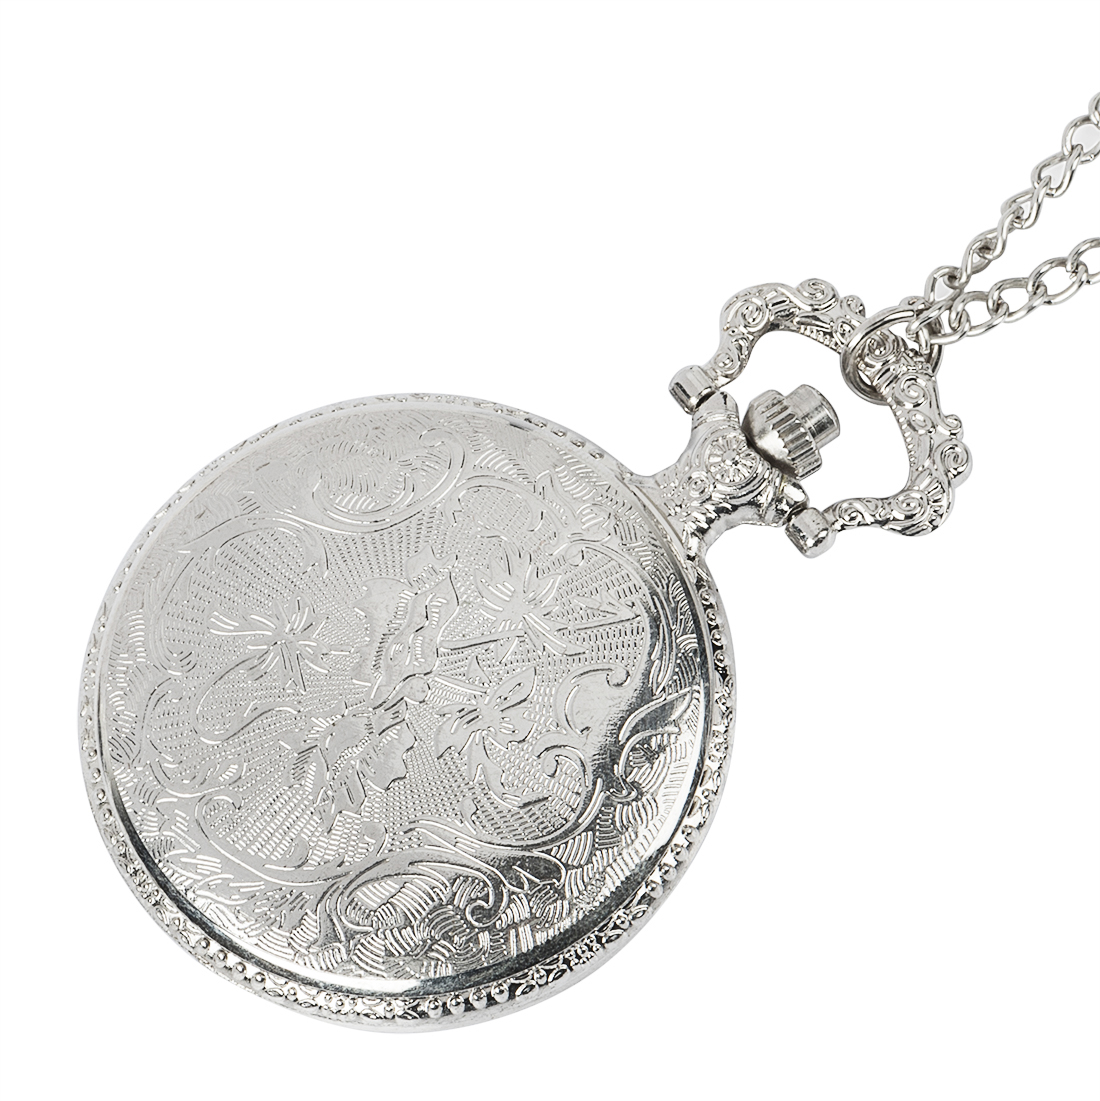 Fashion Vintage Pocket Watch Alloy Roman Number Dual Time Display Clock Necklace Chain Watches Birthday Gifts in Pocket Fob Watches from Watches